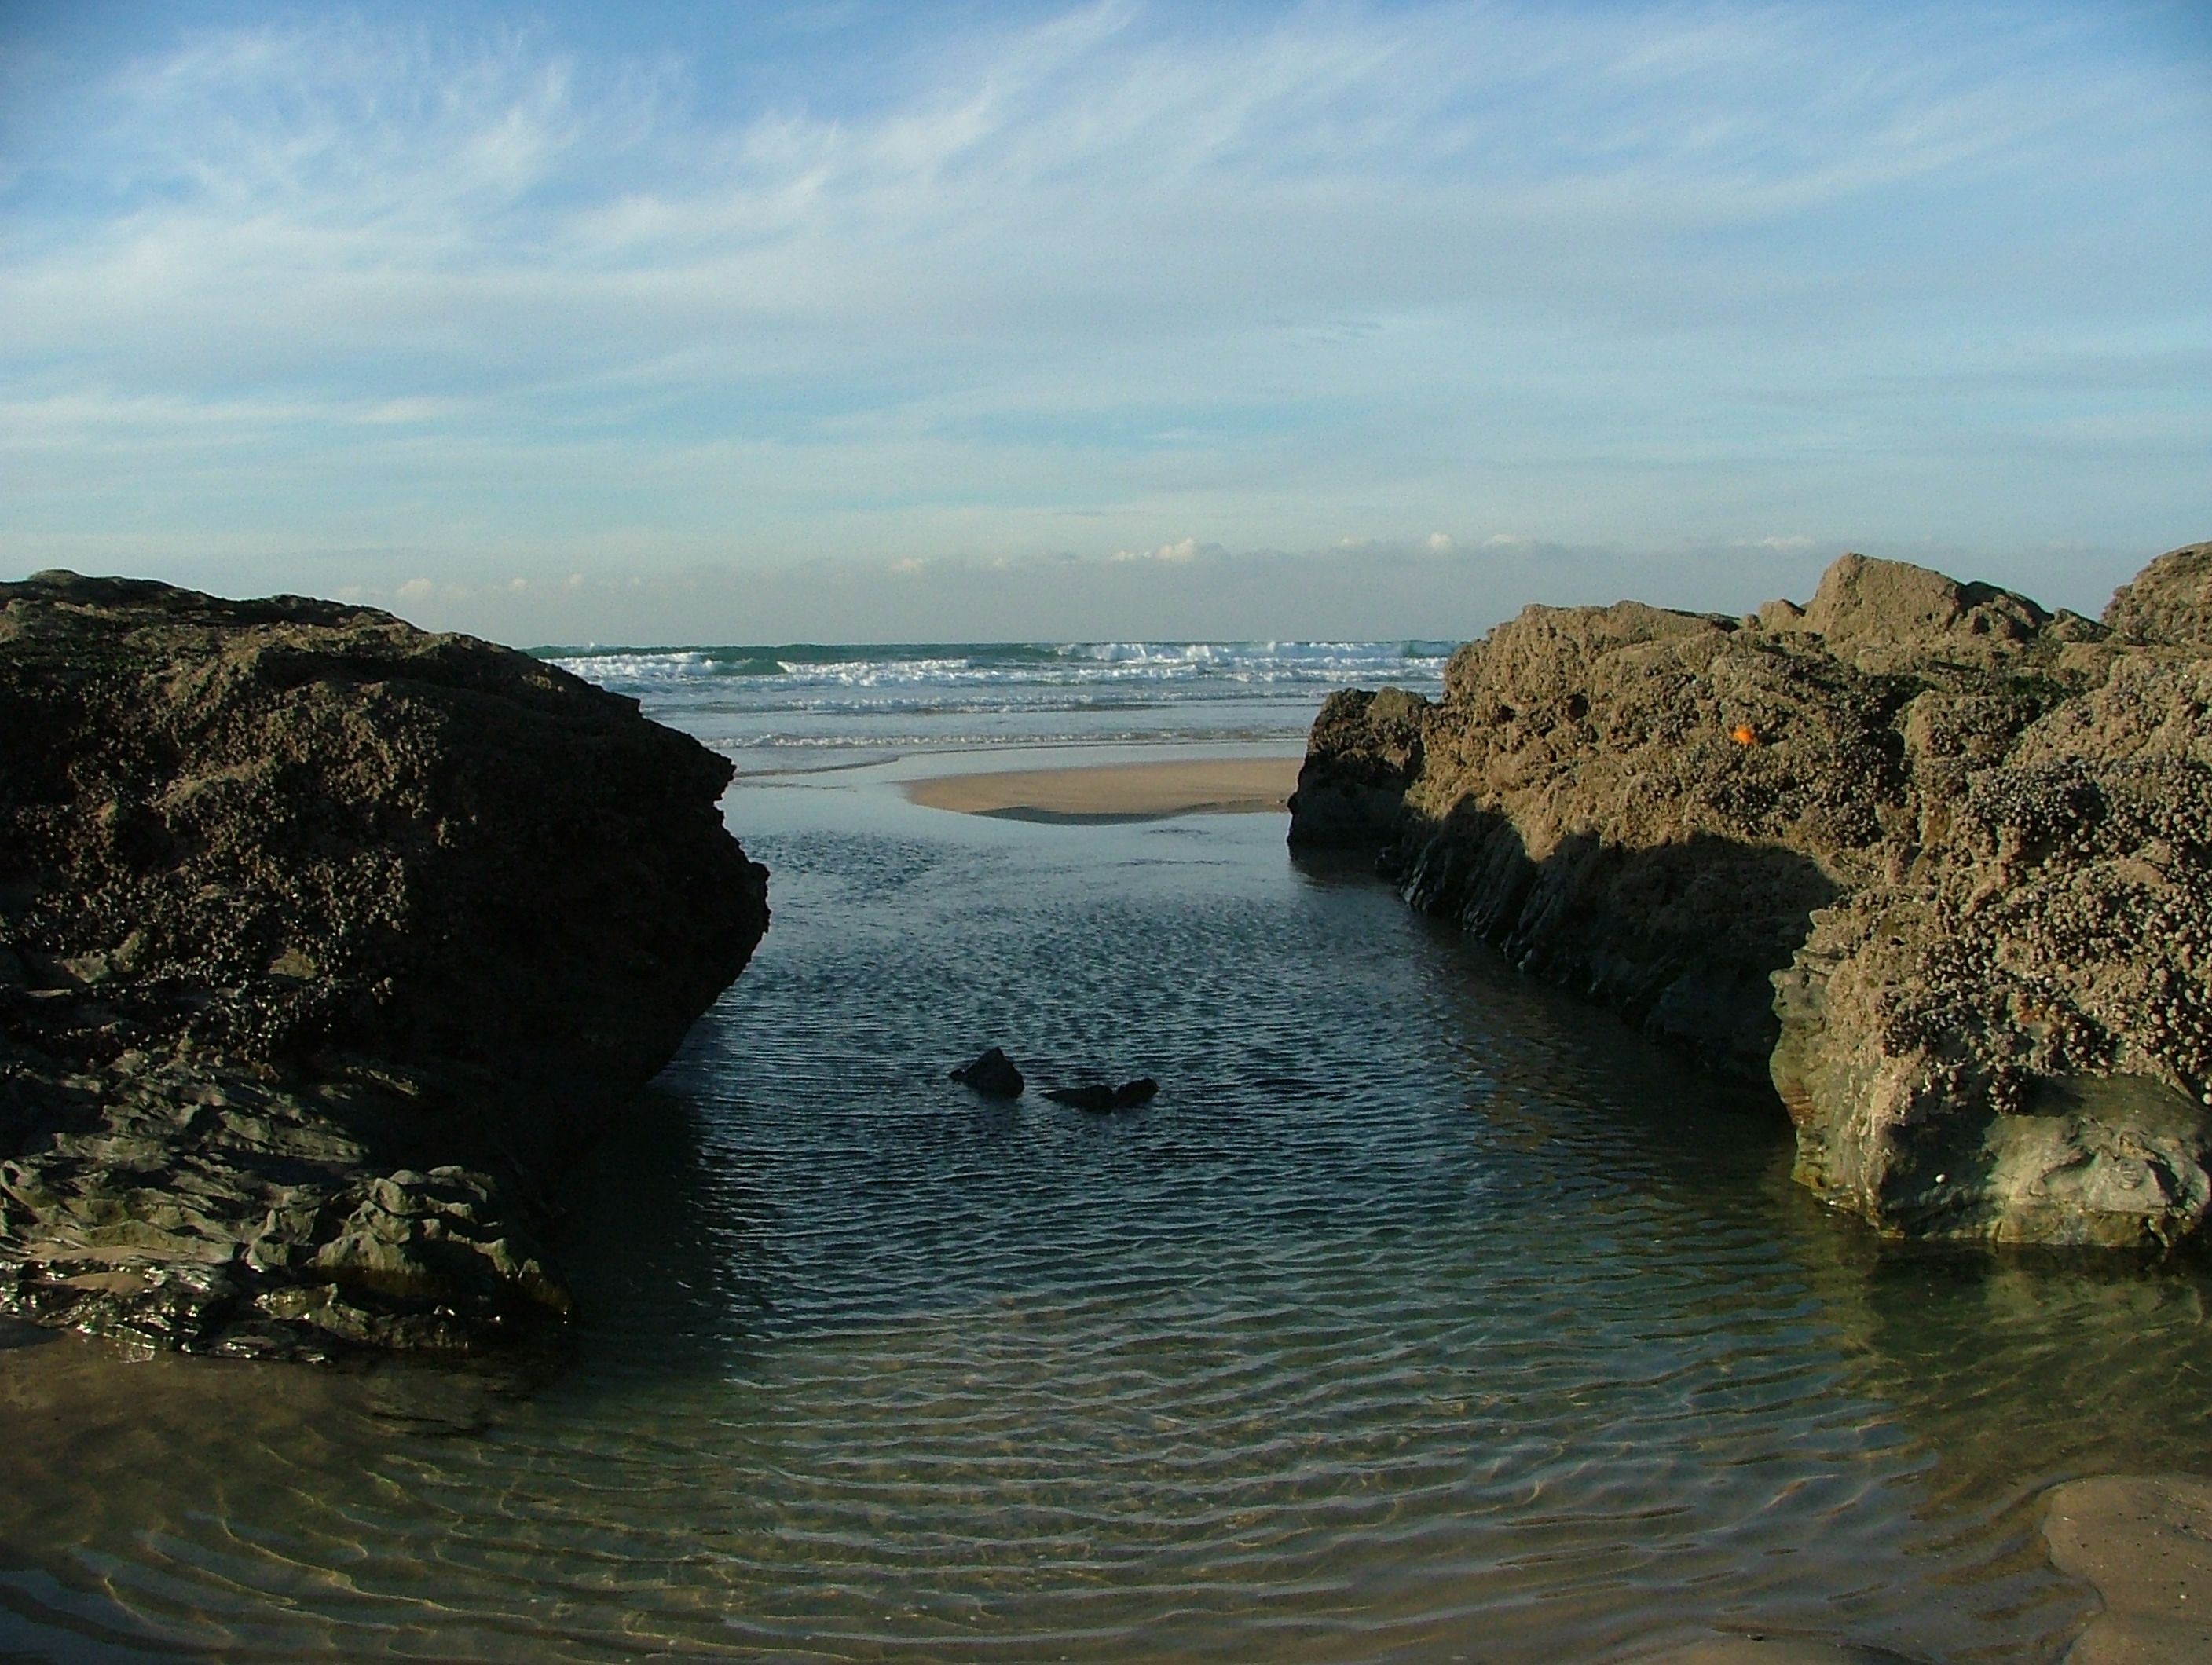 The 'sheeps dip' on Gwithian beach, where farmers used to bring